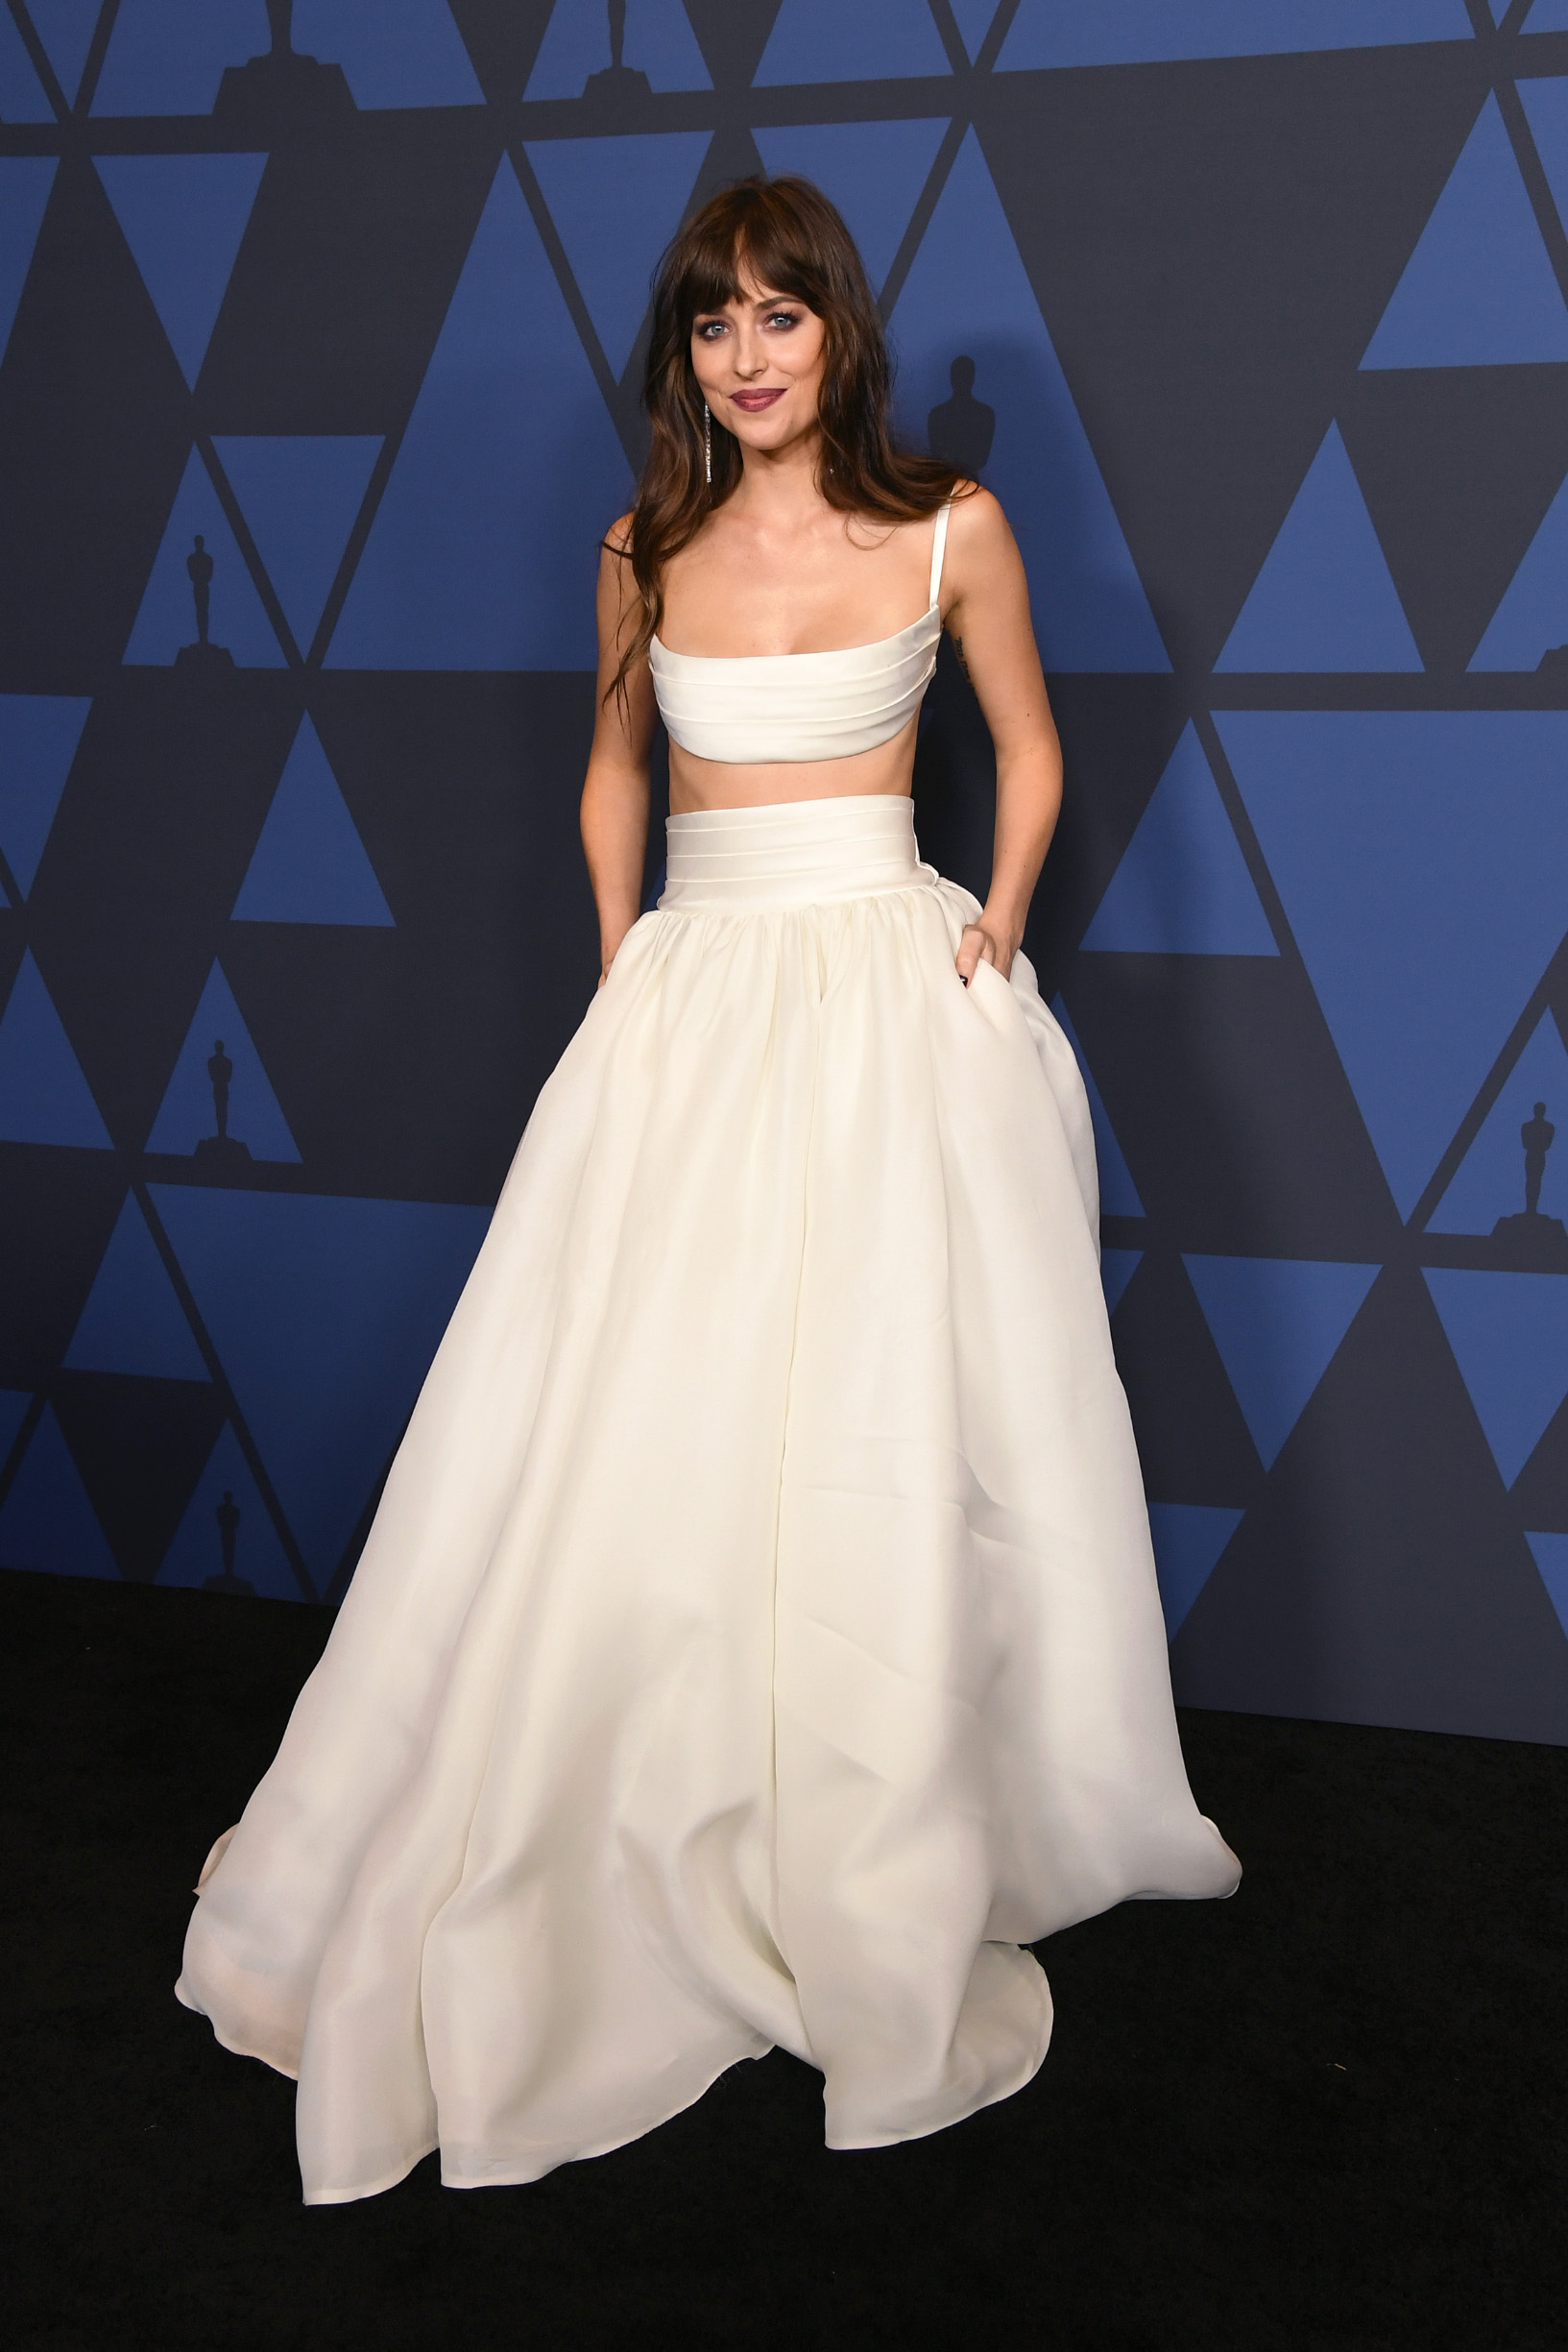 HOLLYWOOD, CALIFORNIA - OCTOBER 27: Dakota Johnson attends the Academy Of Motion Picture Arts And Sciences' 11th Annual Governors Awards at The Ray Dolby Ballroom at Hollywood & Highland Center on October 27, 2019 in Hollywood, California. (Photo by Kevin Winter/Getty Images)